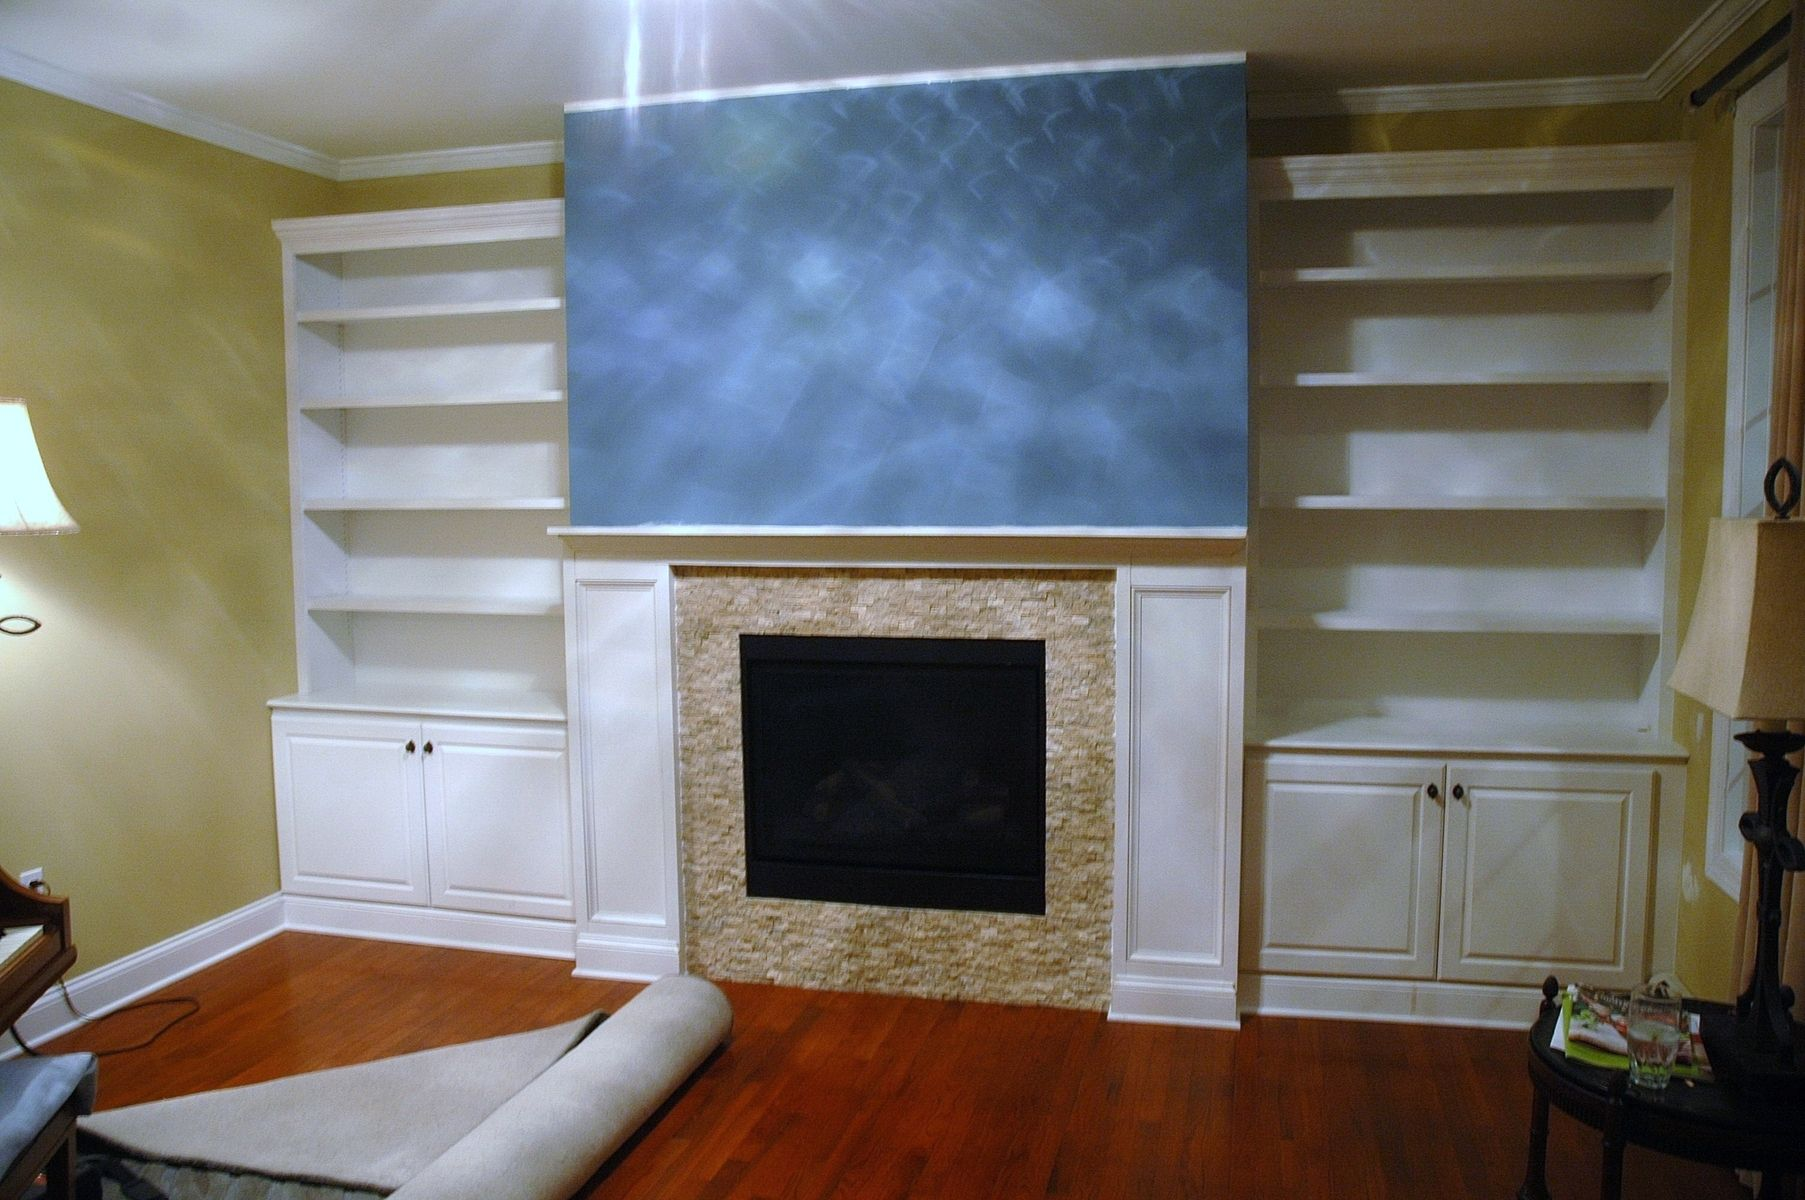 Handmade BuiltIn Bookcases Base Cabinets And Fireplace